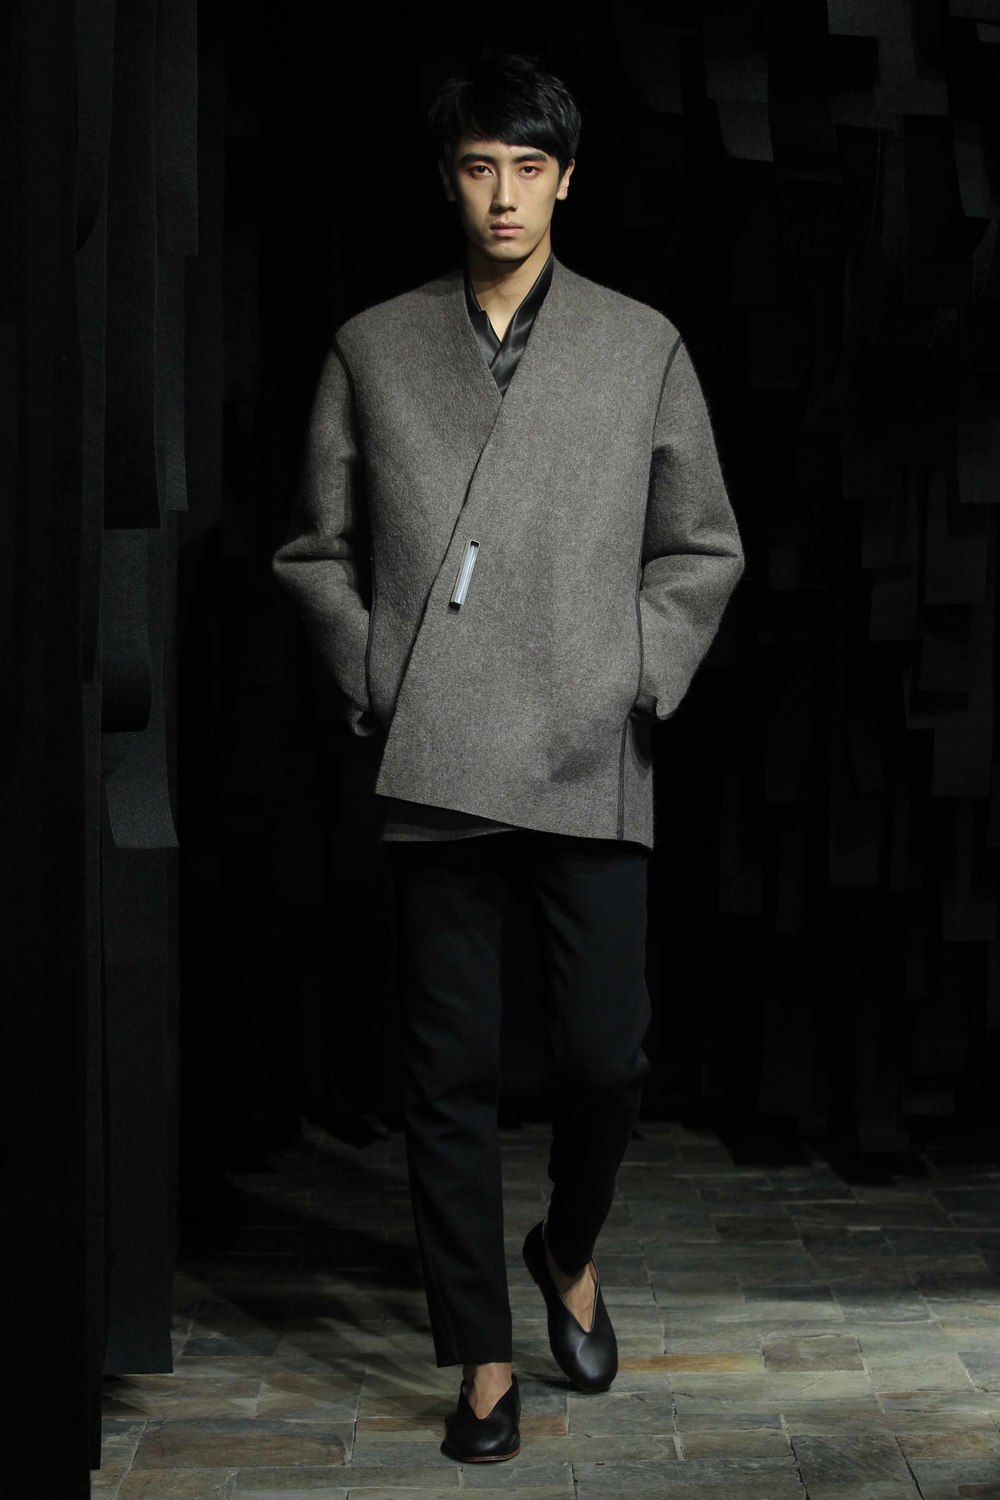 Straight-cut yak-felt man's jacket // spiral cut woolen pants with leather trim // silver brooch